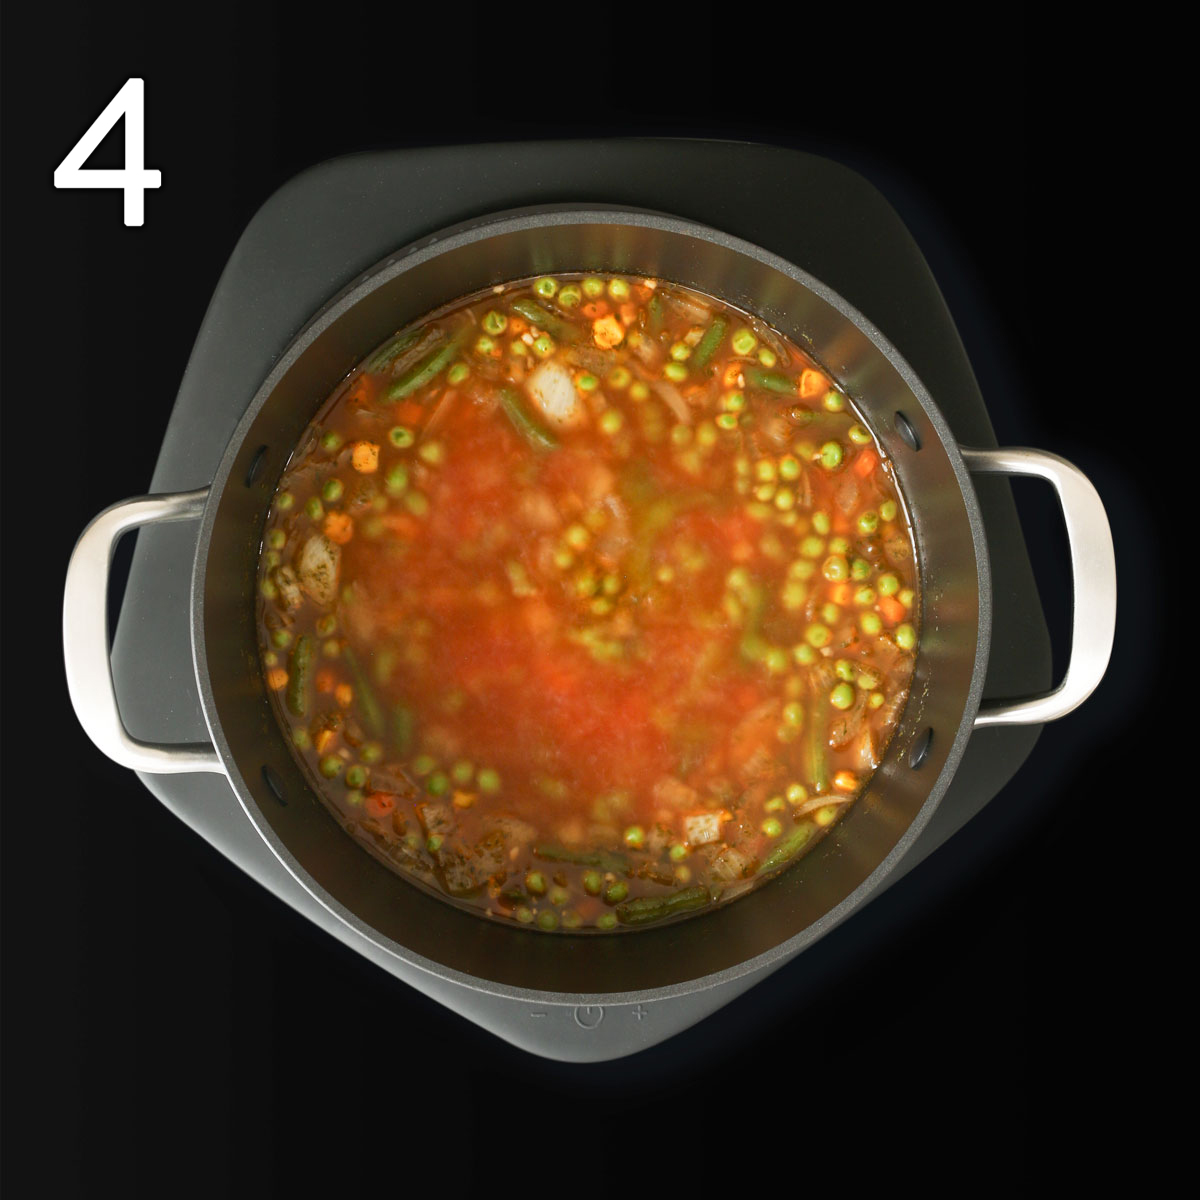 vegan soup with alphabet noodles simmering on stovetop.